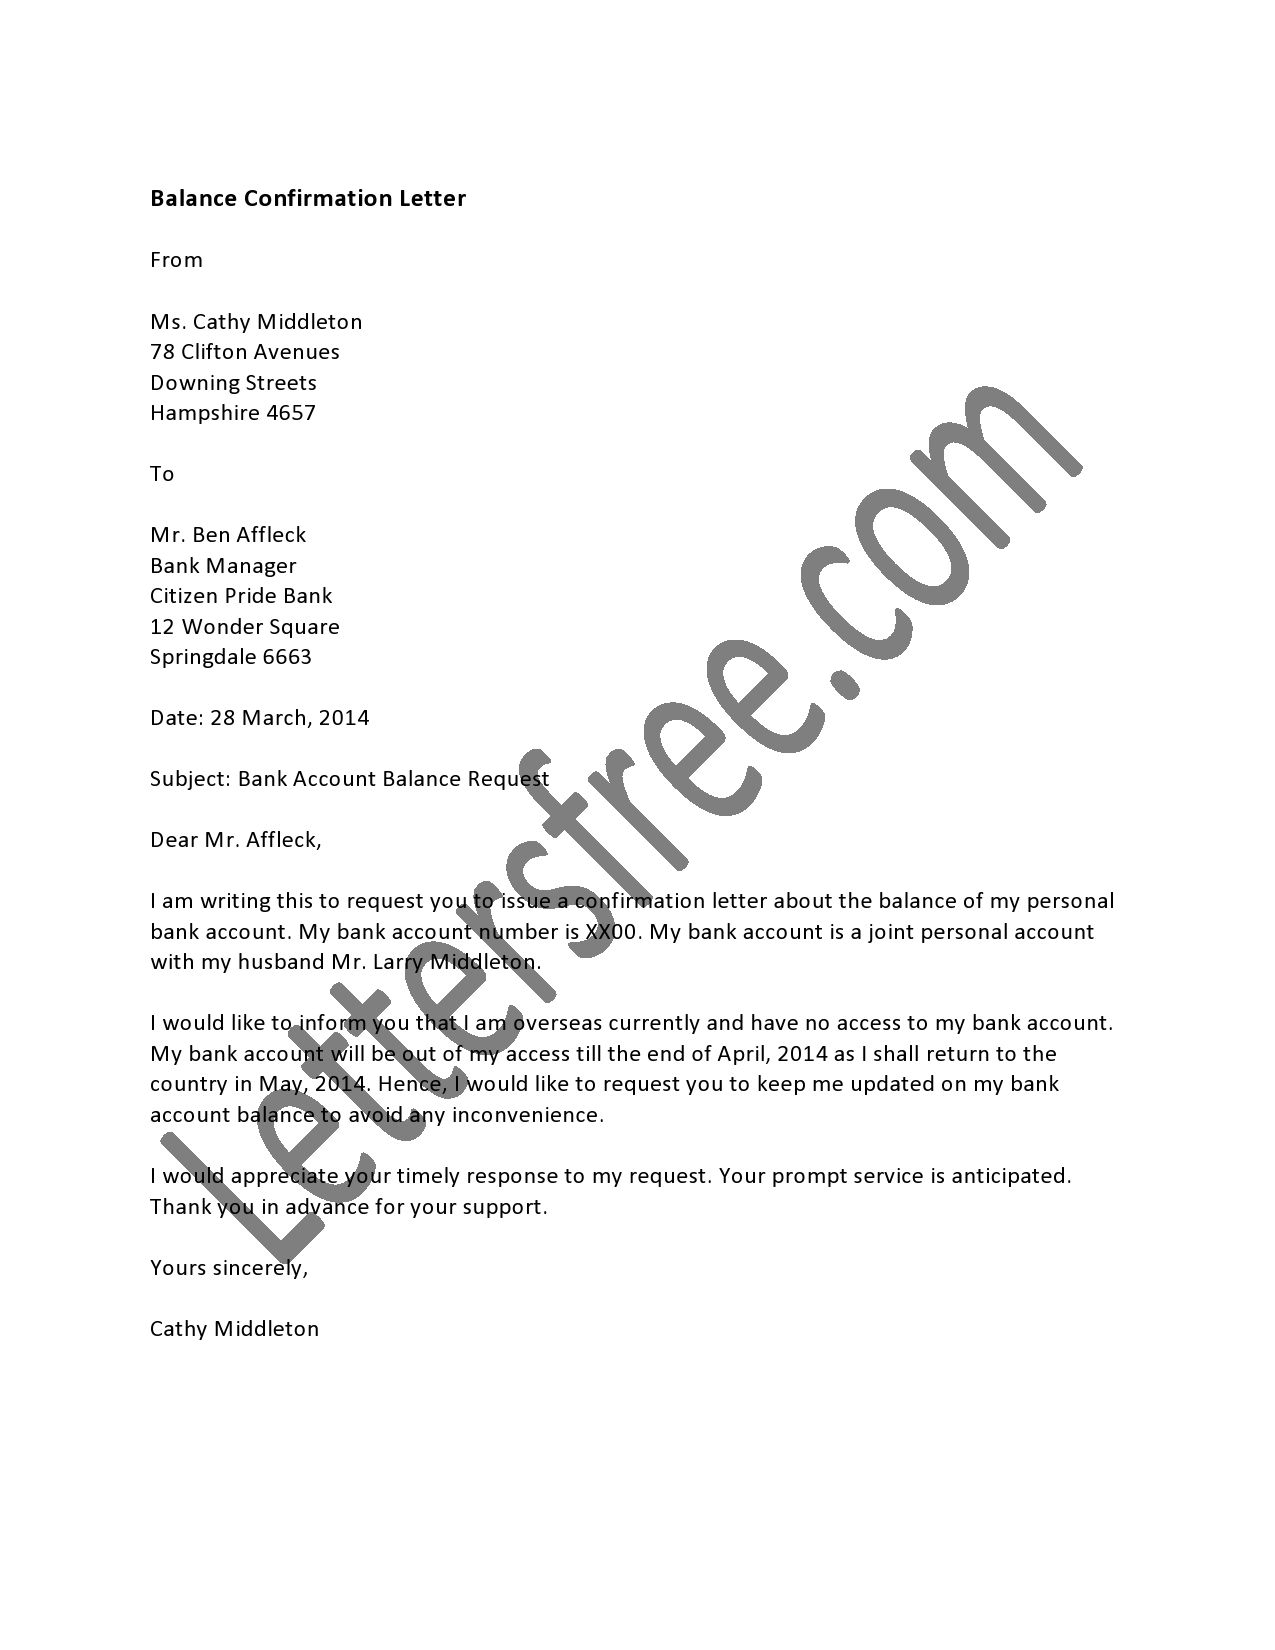 Letter Format Used In Banks. letter official auditors audits balance letters audit confirmation sample  bank account verification certification hsbc for Balance Confirmation Letter format the and annual